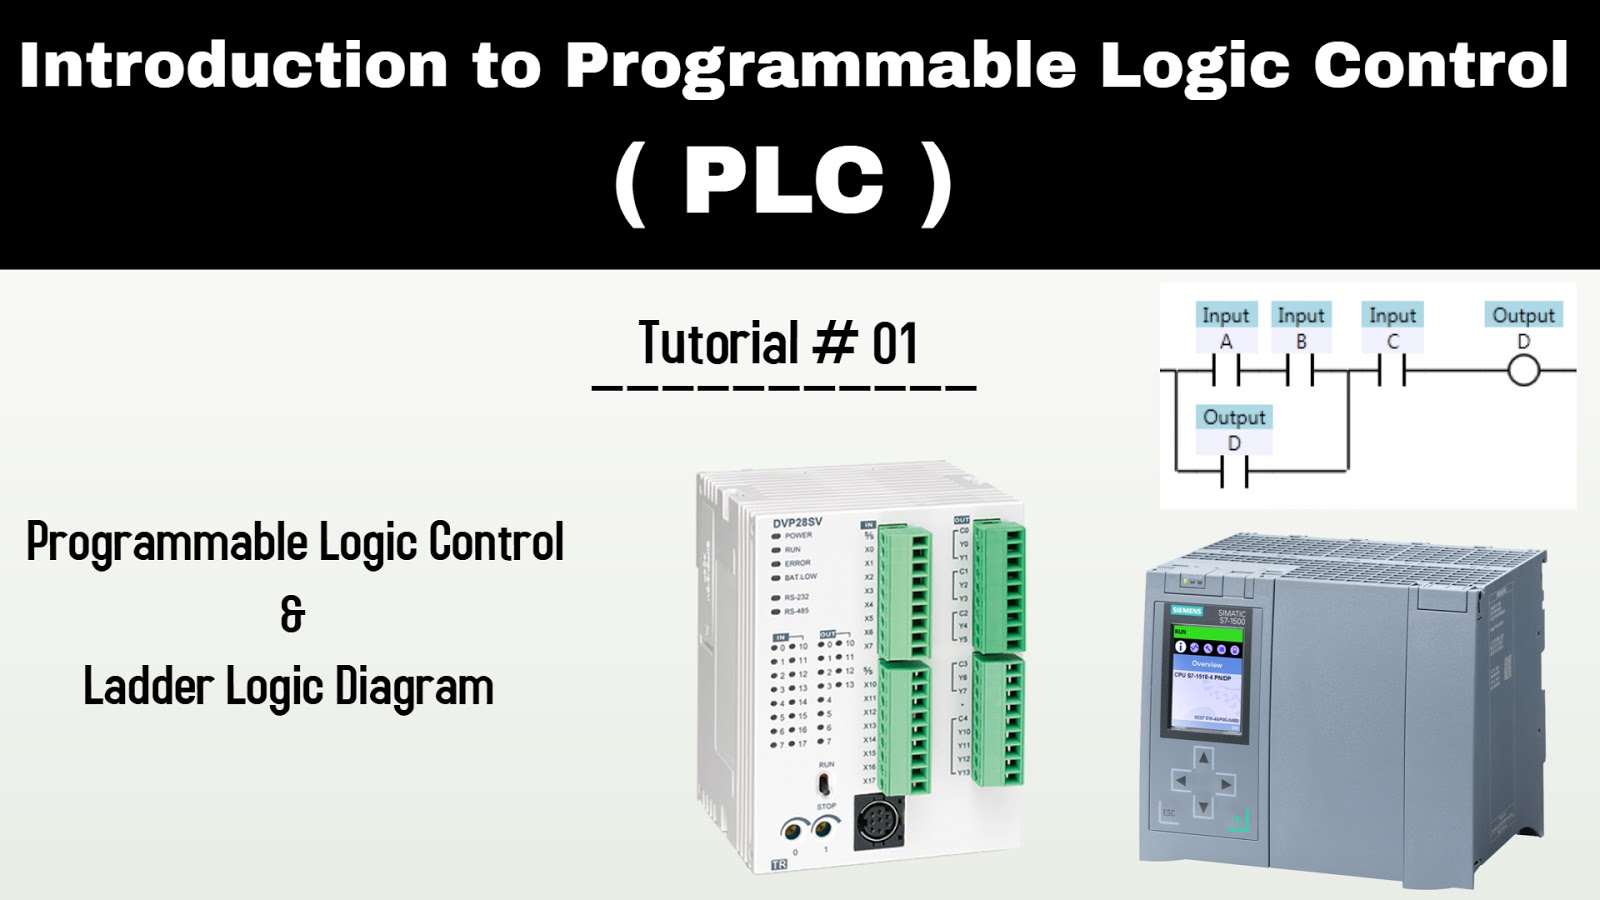 Labwire introduction to plc and ladder logic diagrams all complete plc programming tutorials ladder logic diagrams with video tutorials ccuart Choice Image